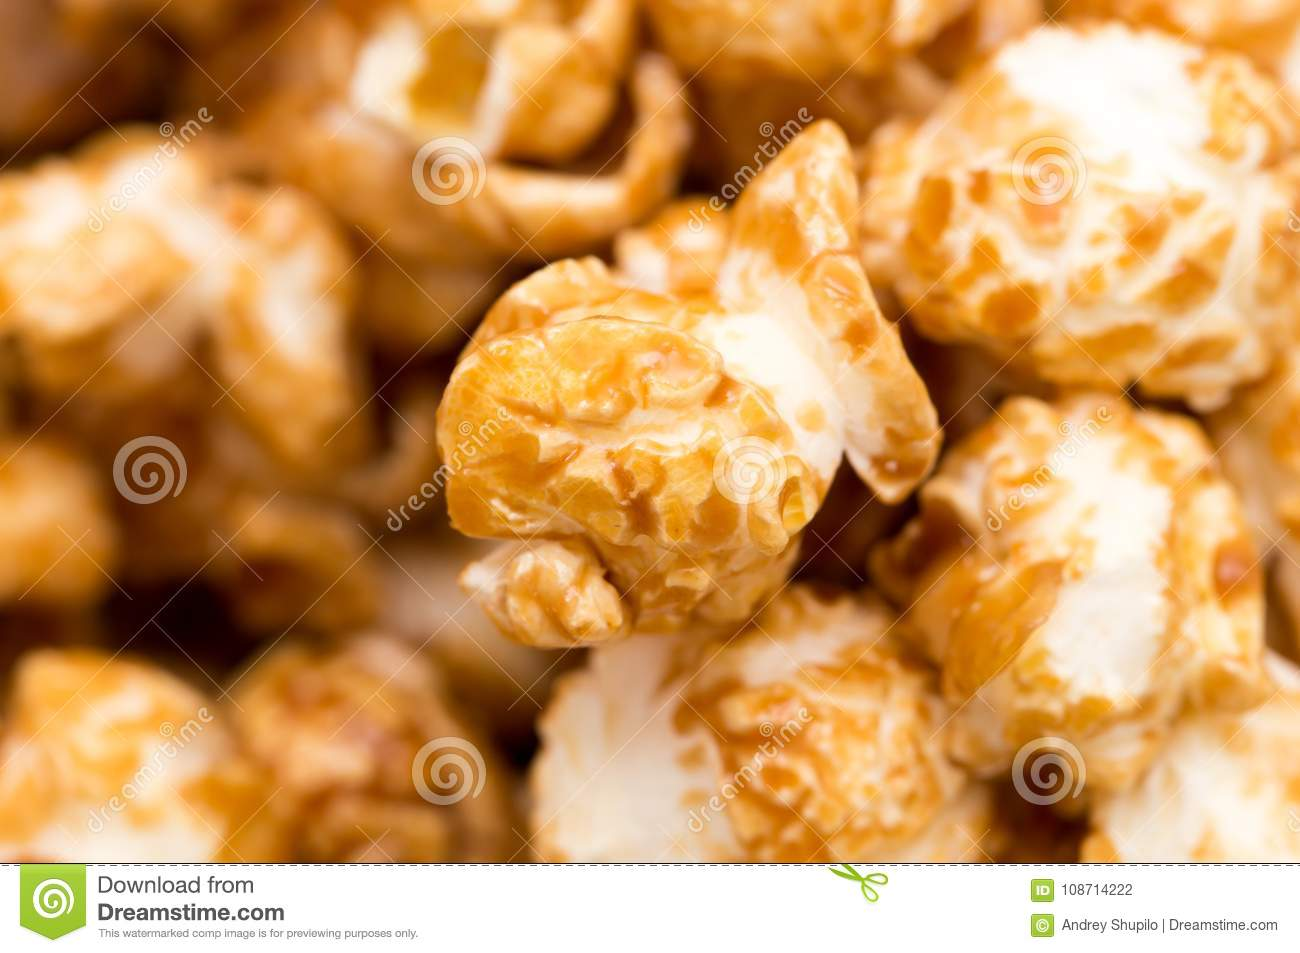 Popcorn as a background. macro